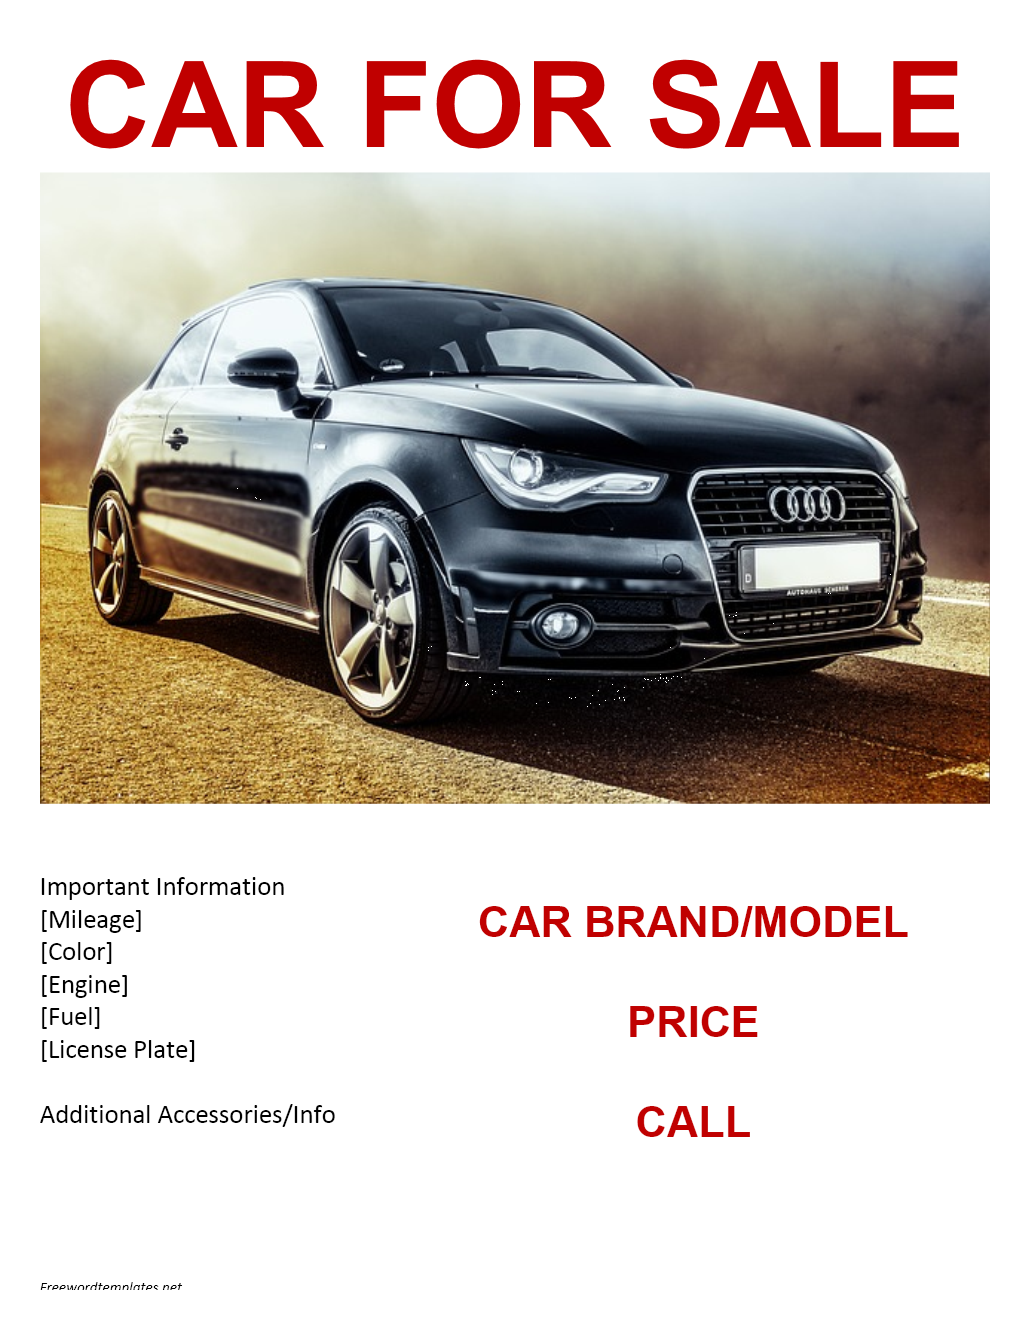 Car for Sale Template for Word